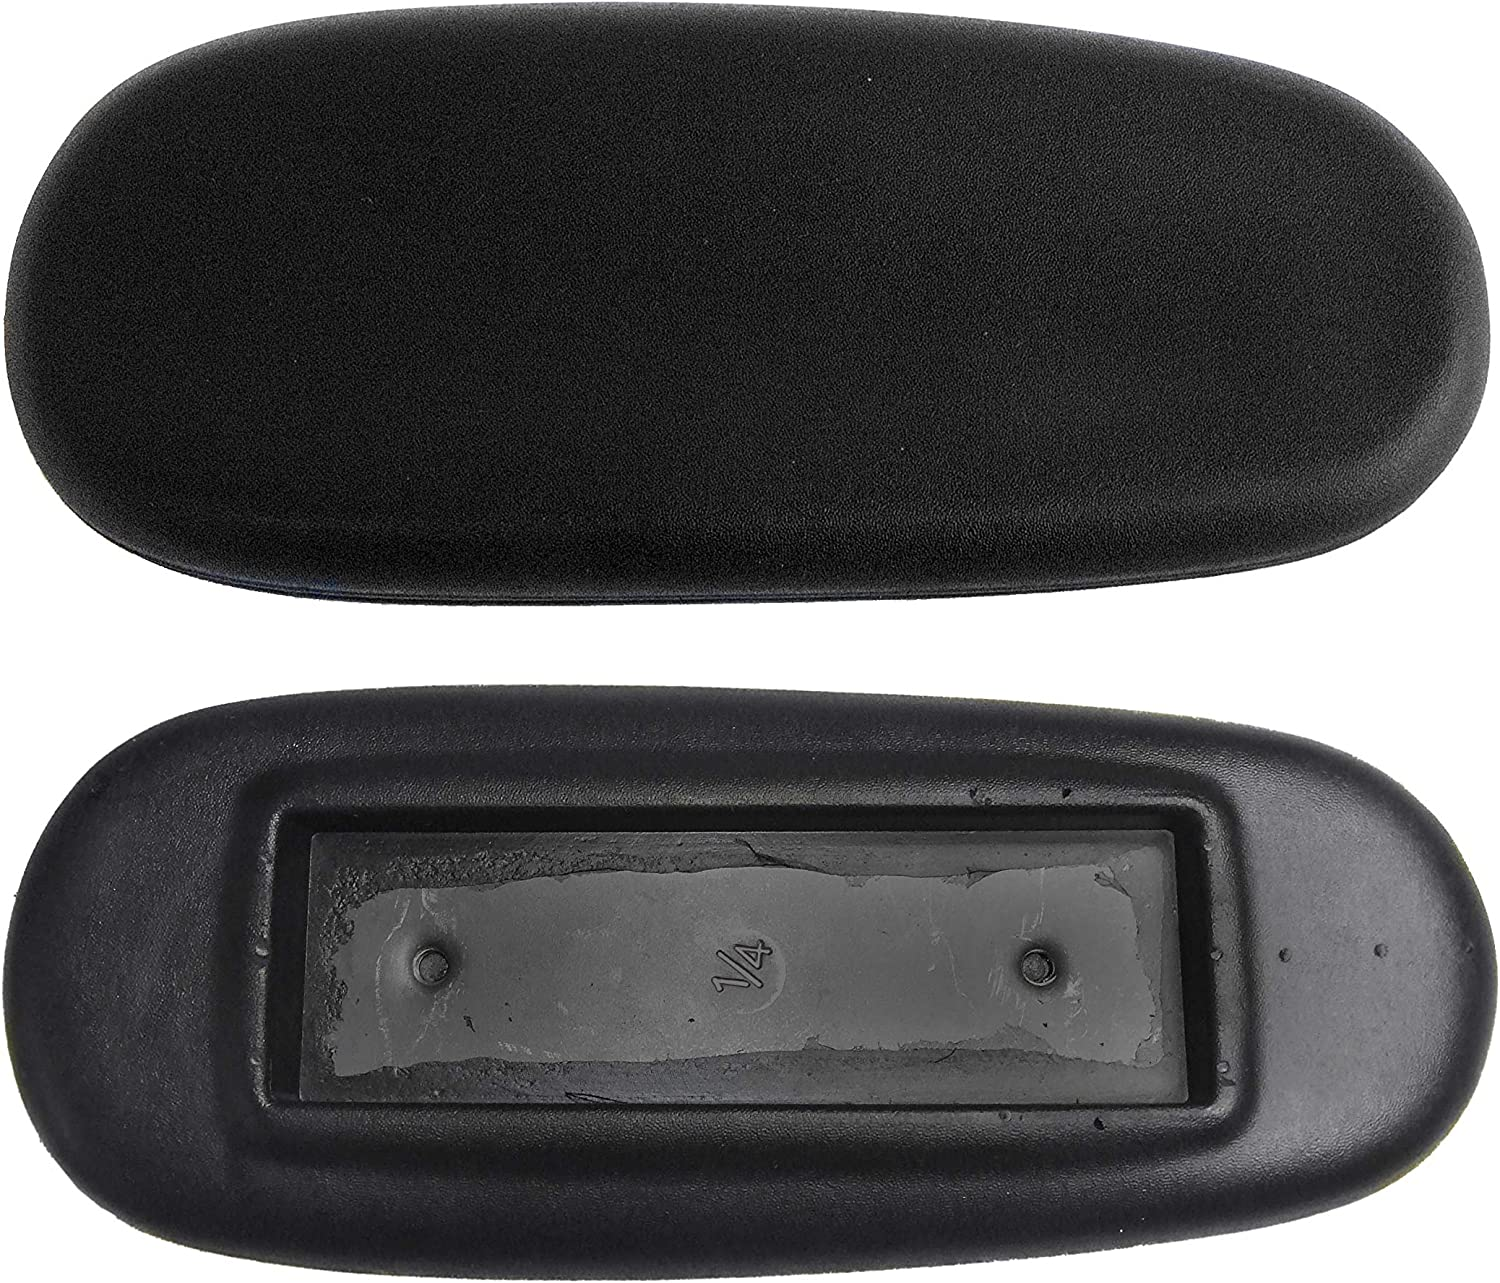 Amazon Com Replacement Office Chair Armrest Arm Pads Set Of 2 S2724 3 Furniture Decor